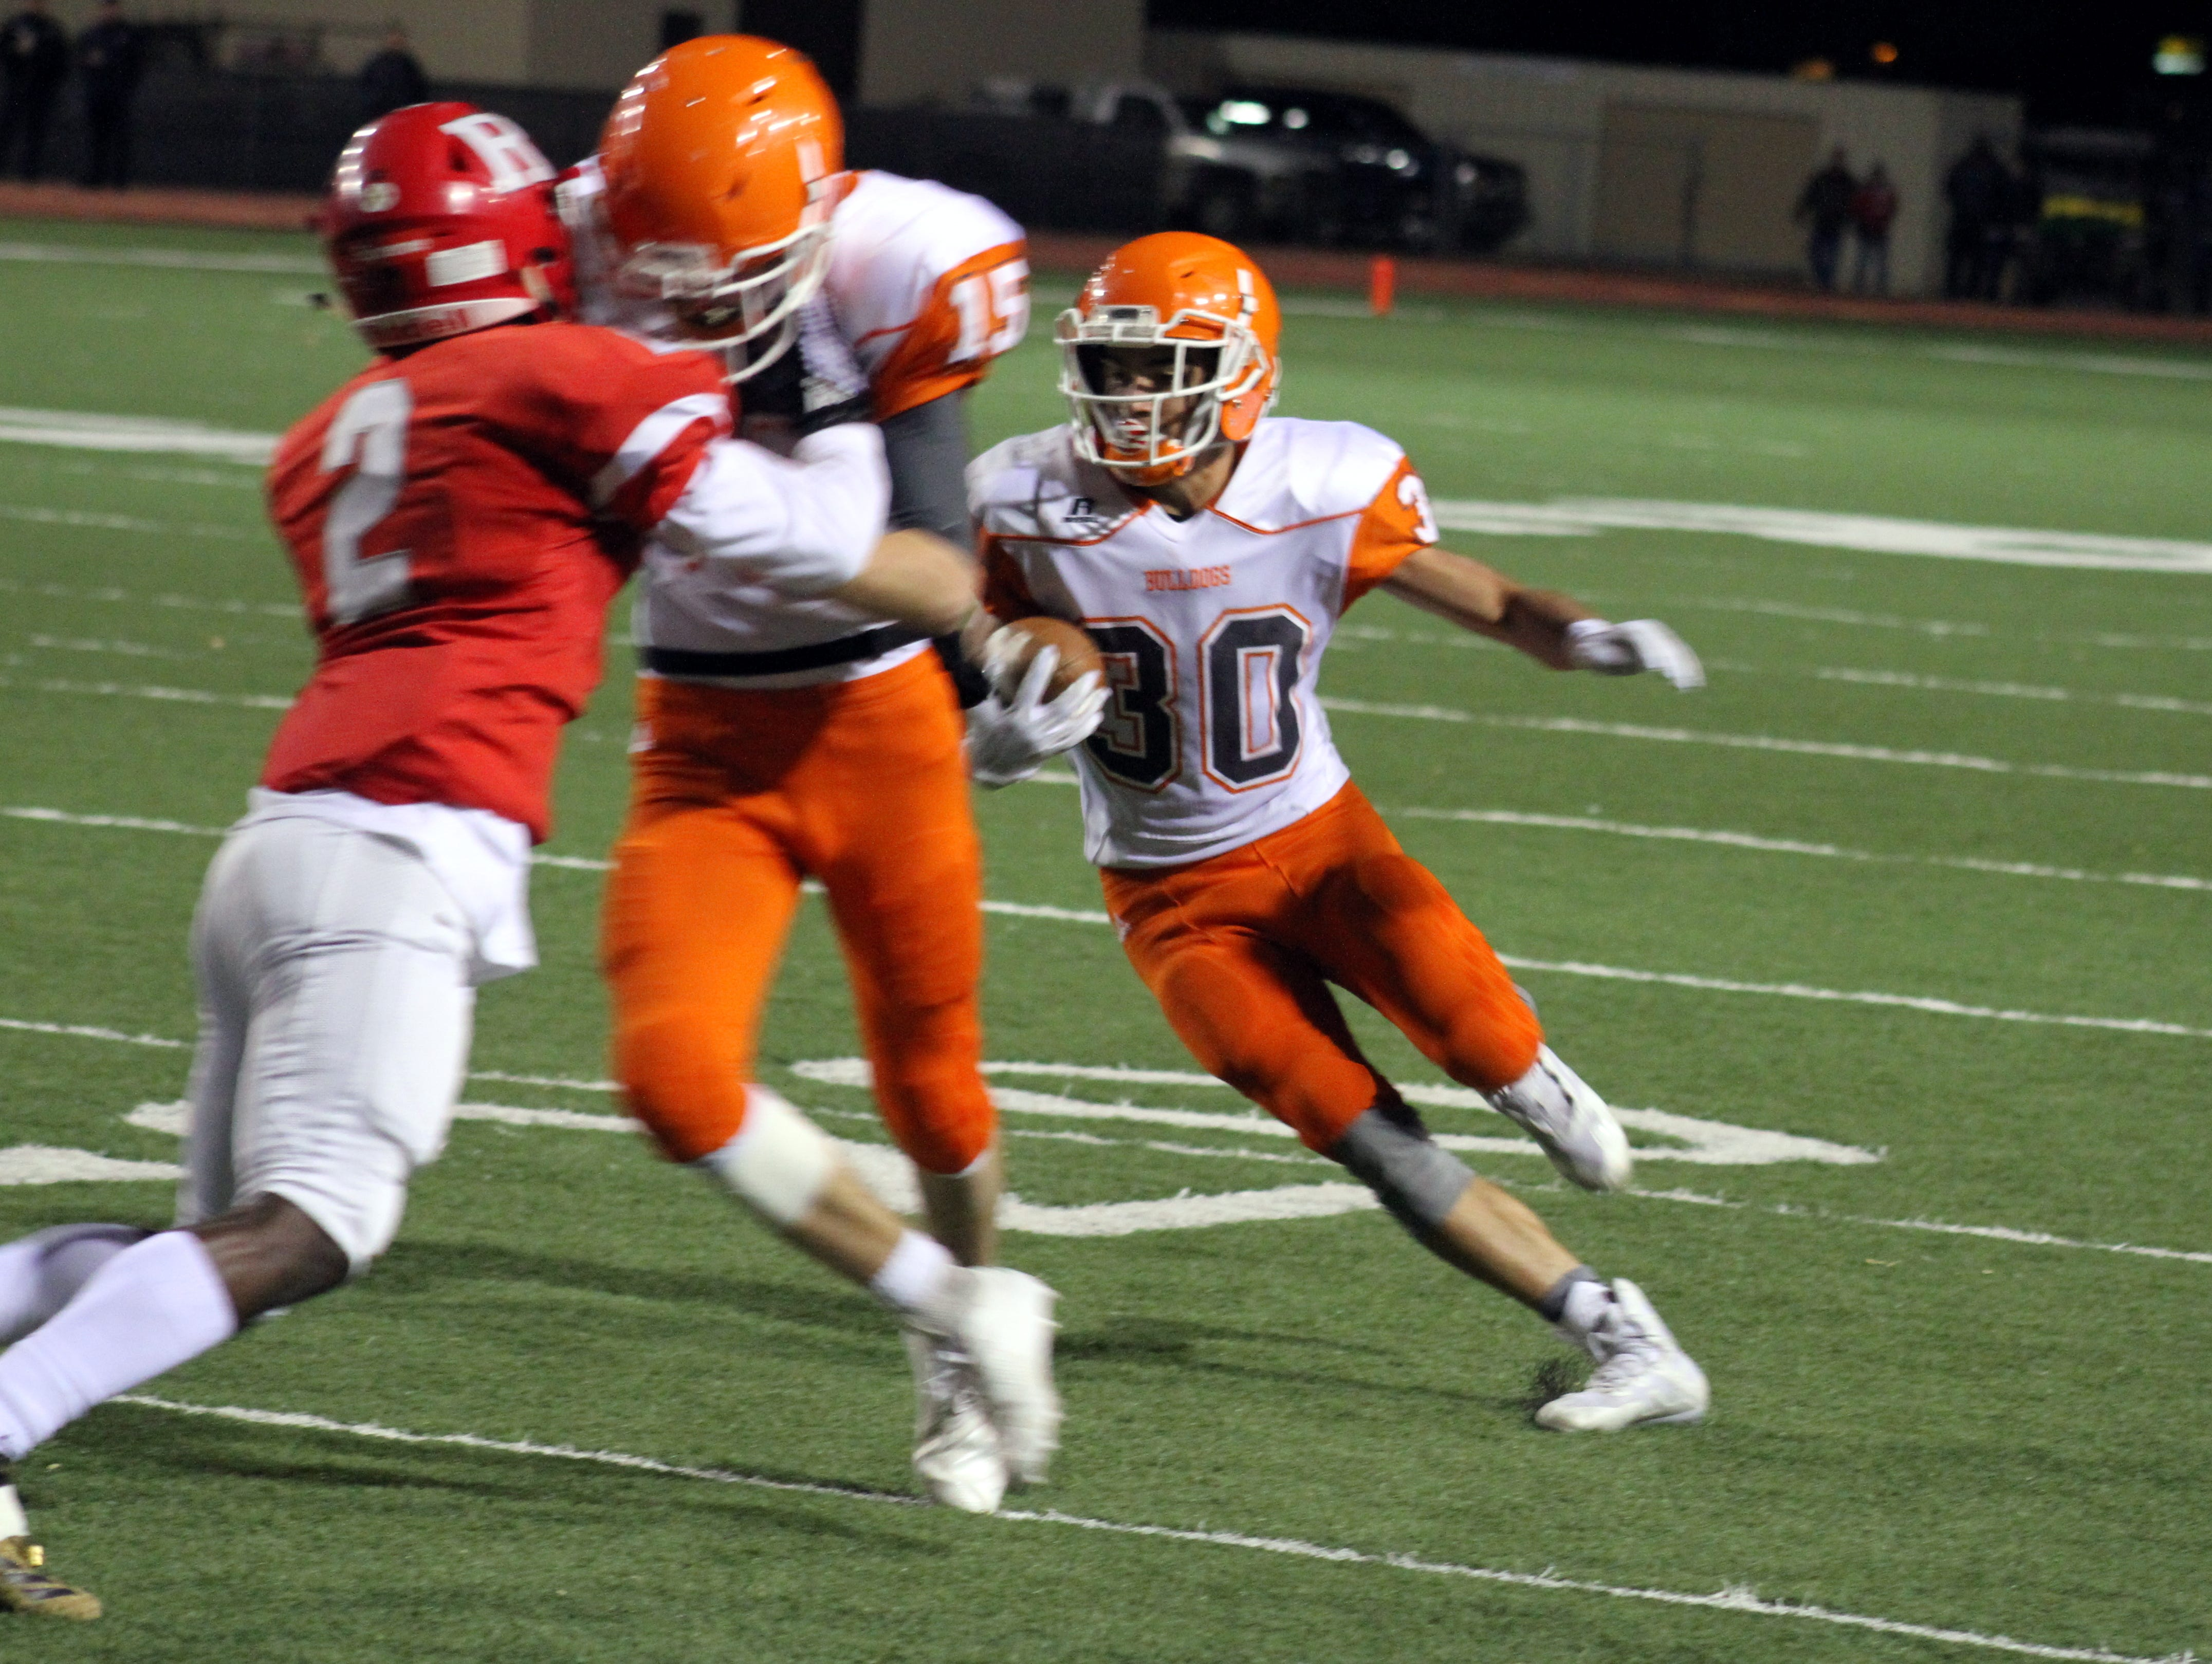 Artesia's Jagger Donaghe gets a block by AJ Estrada (15) during Friday's Class 5A semifinal game.